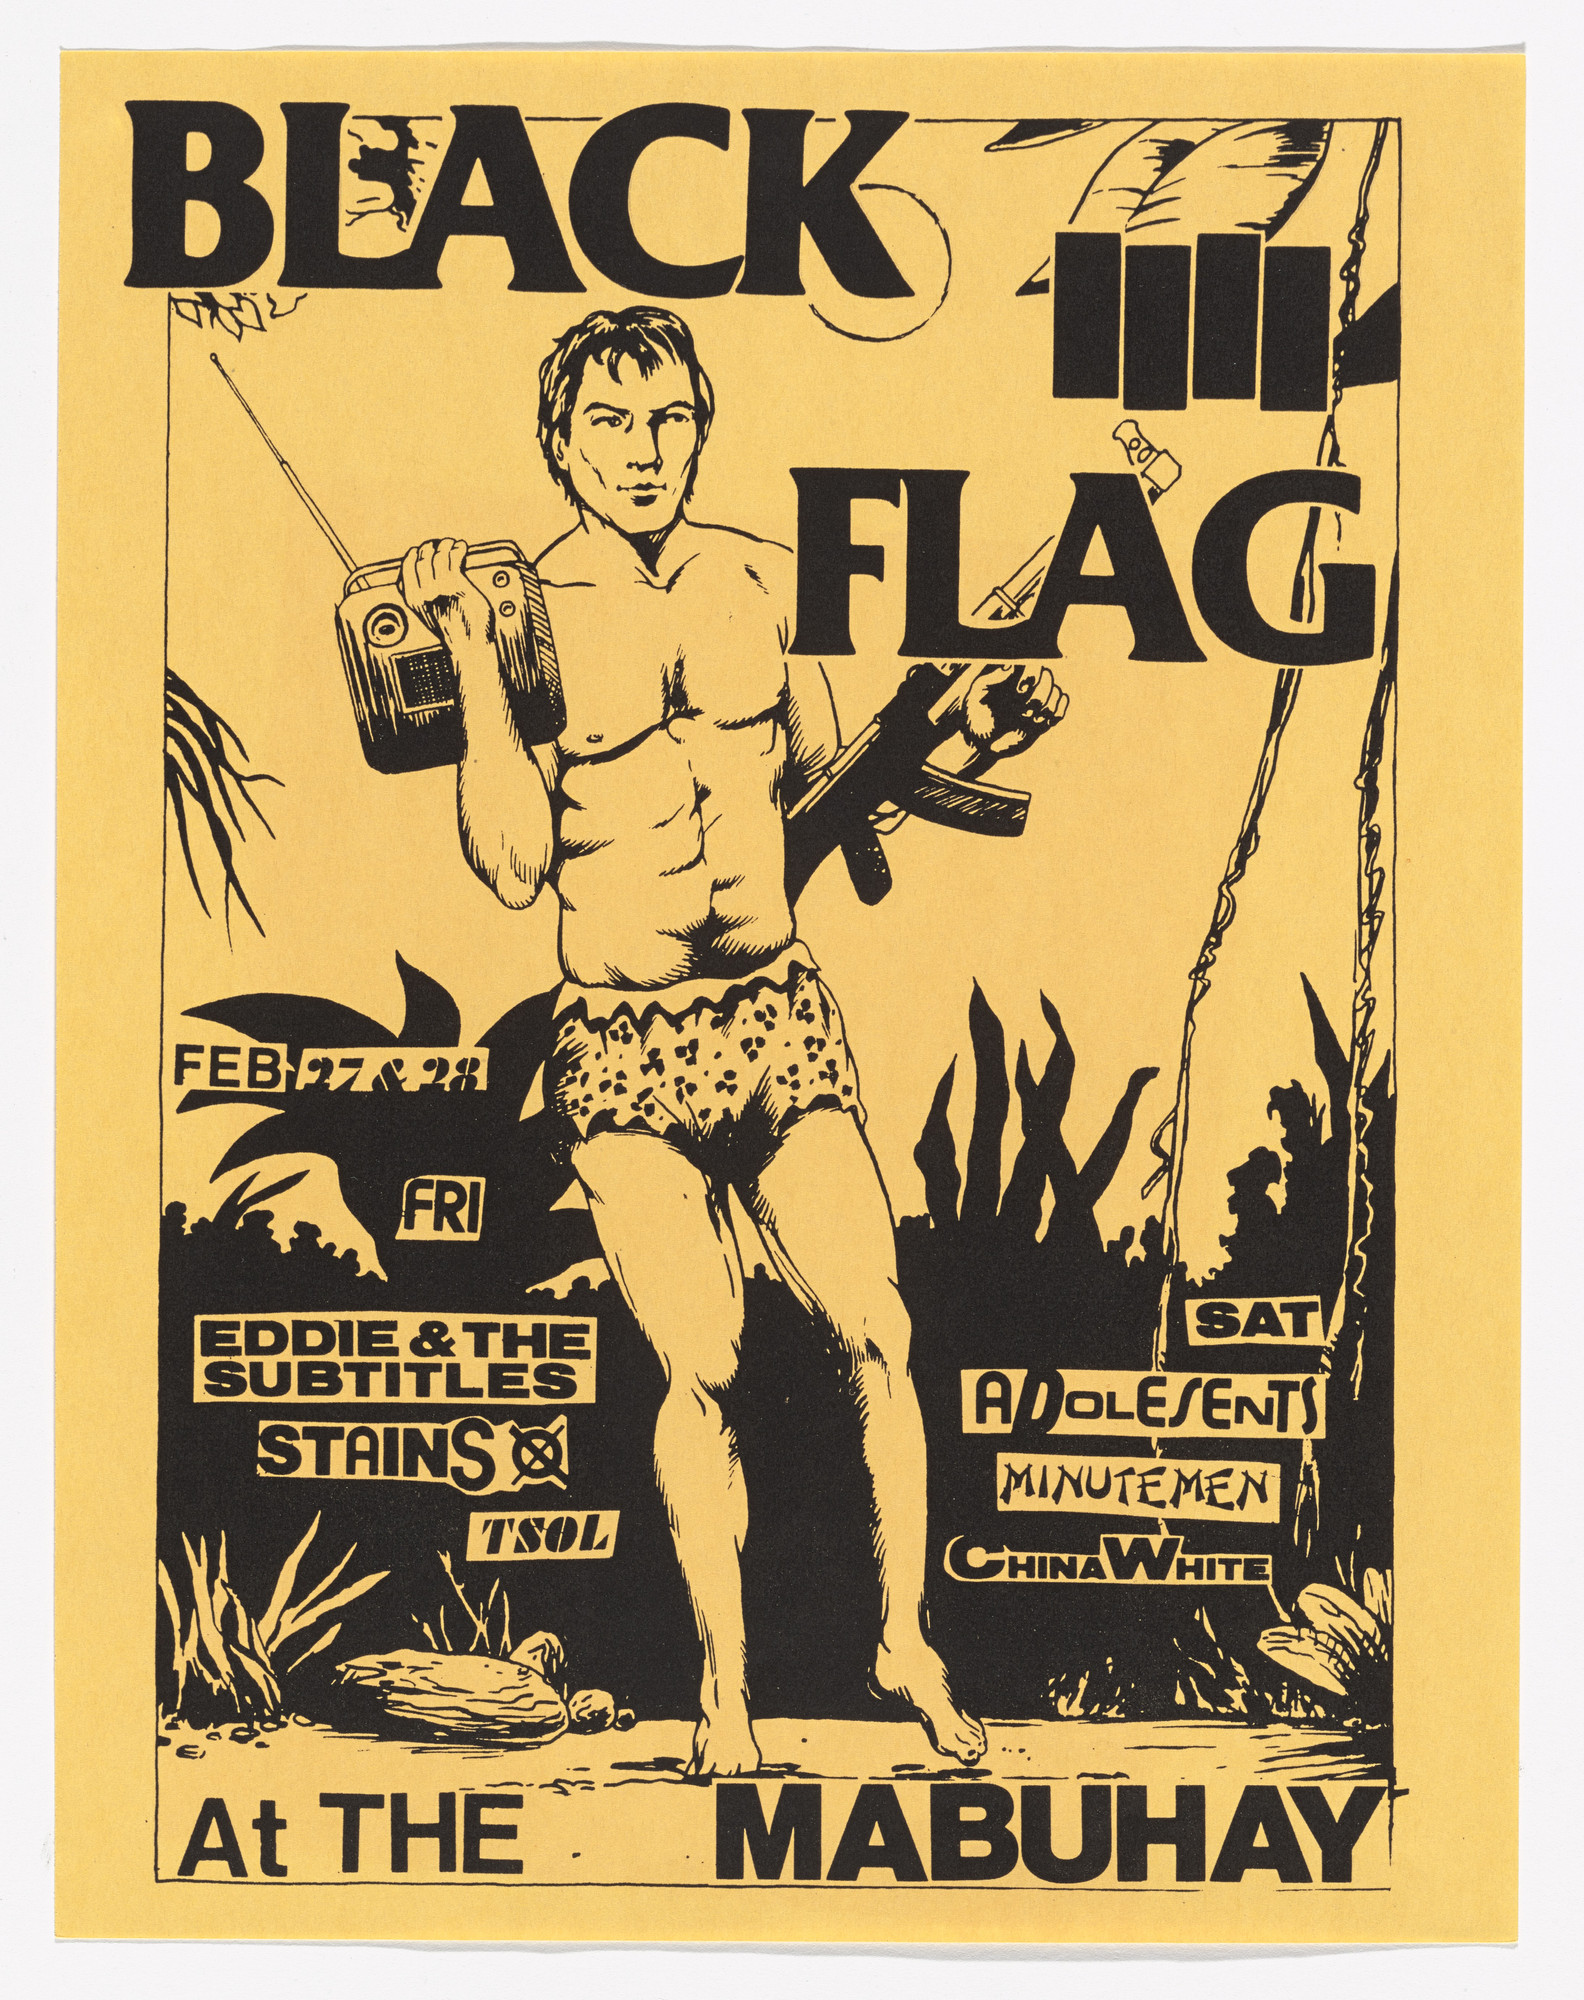 Raymond Pettibon. Black Flag at the Mabuhay. February 27 and 29, 1981